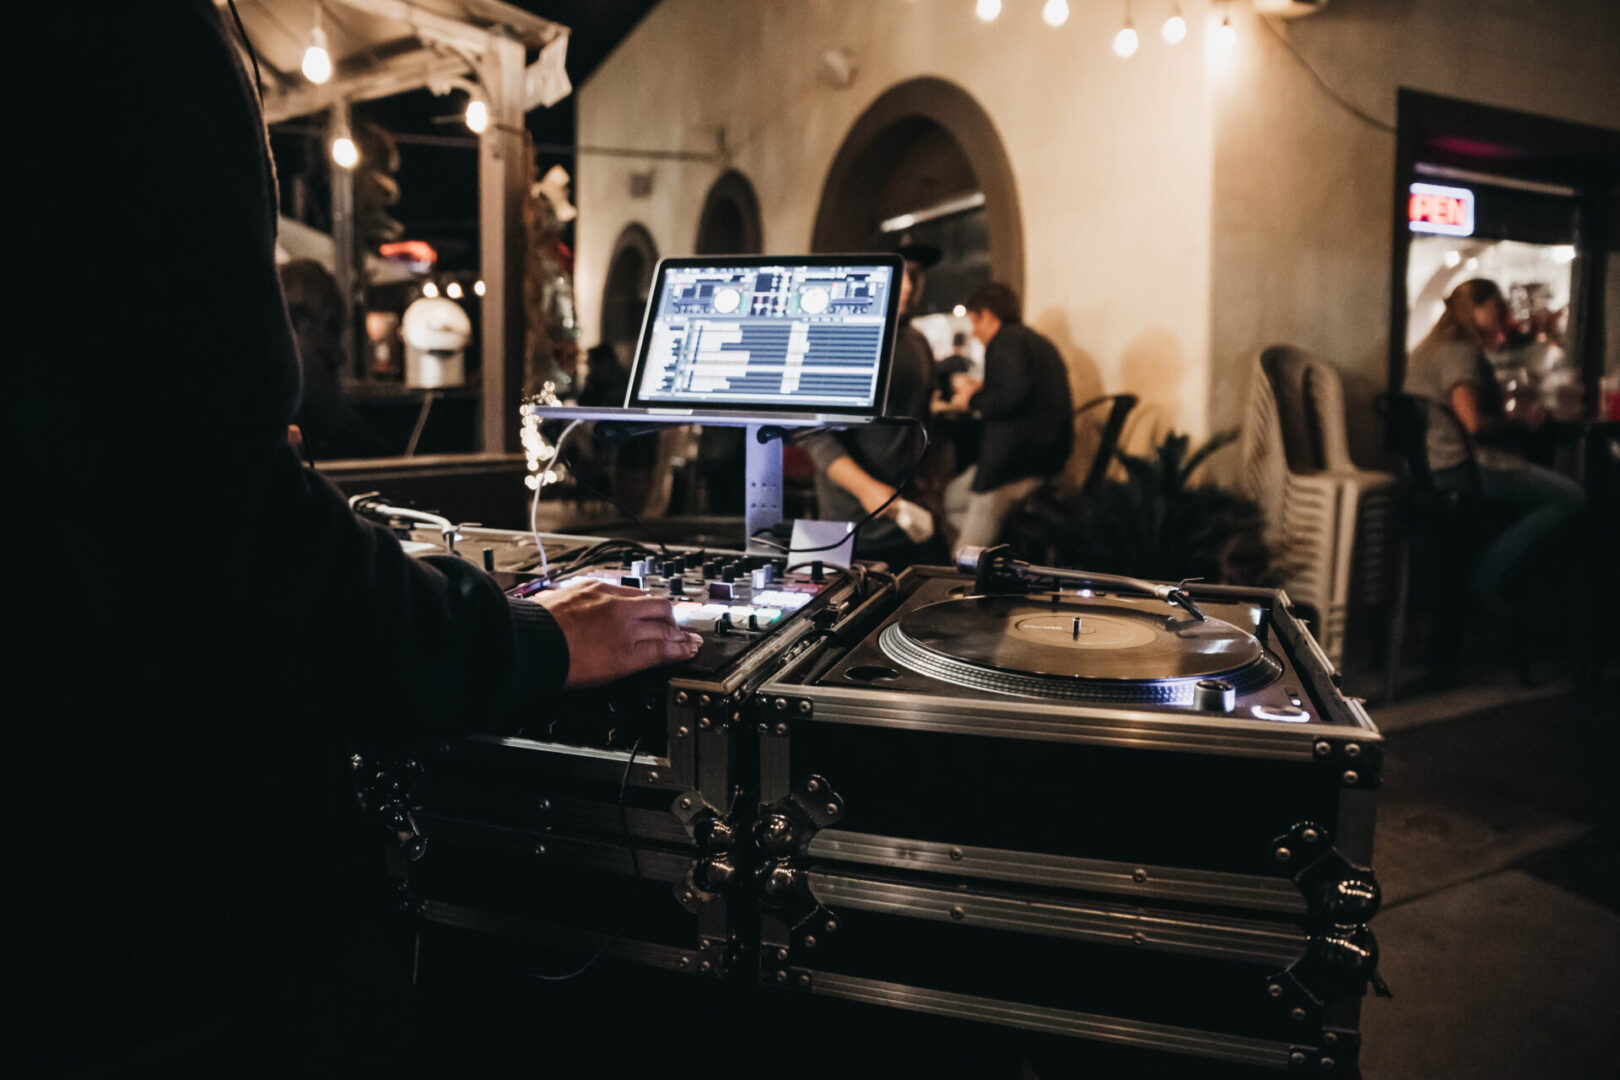 dj playing music in his booth